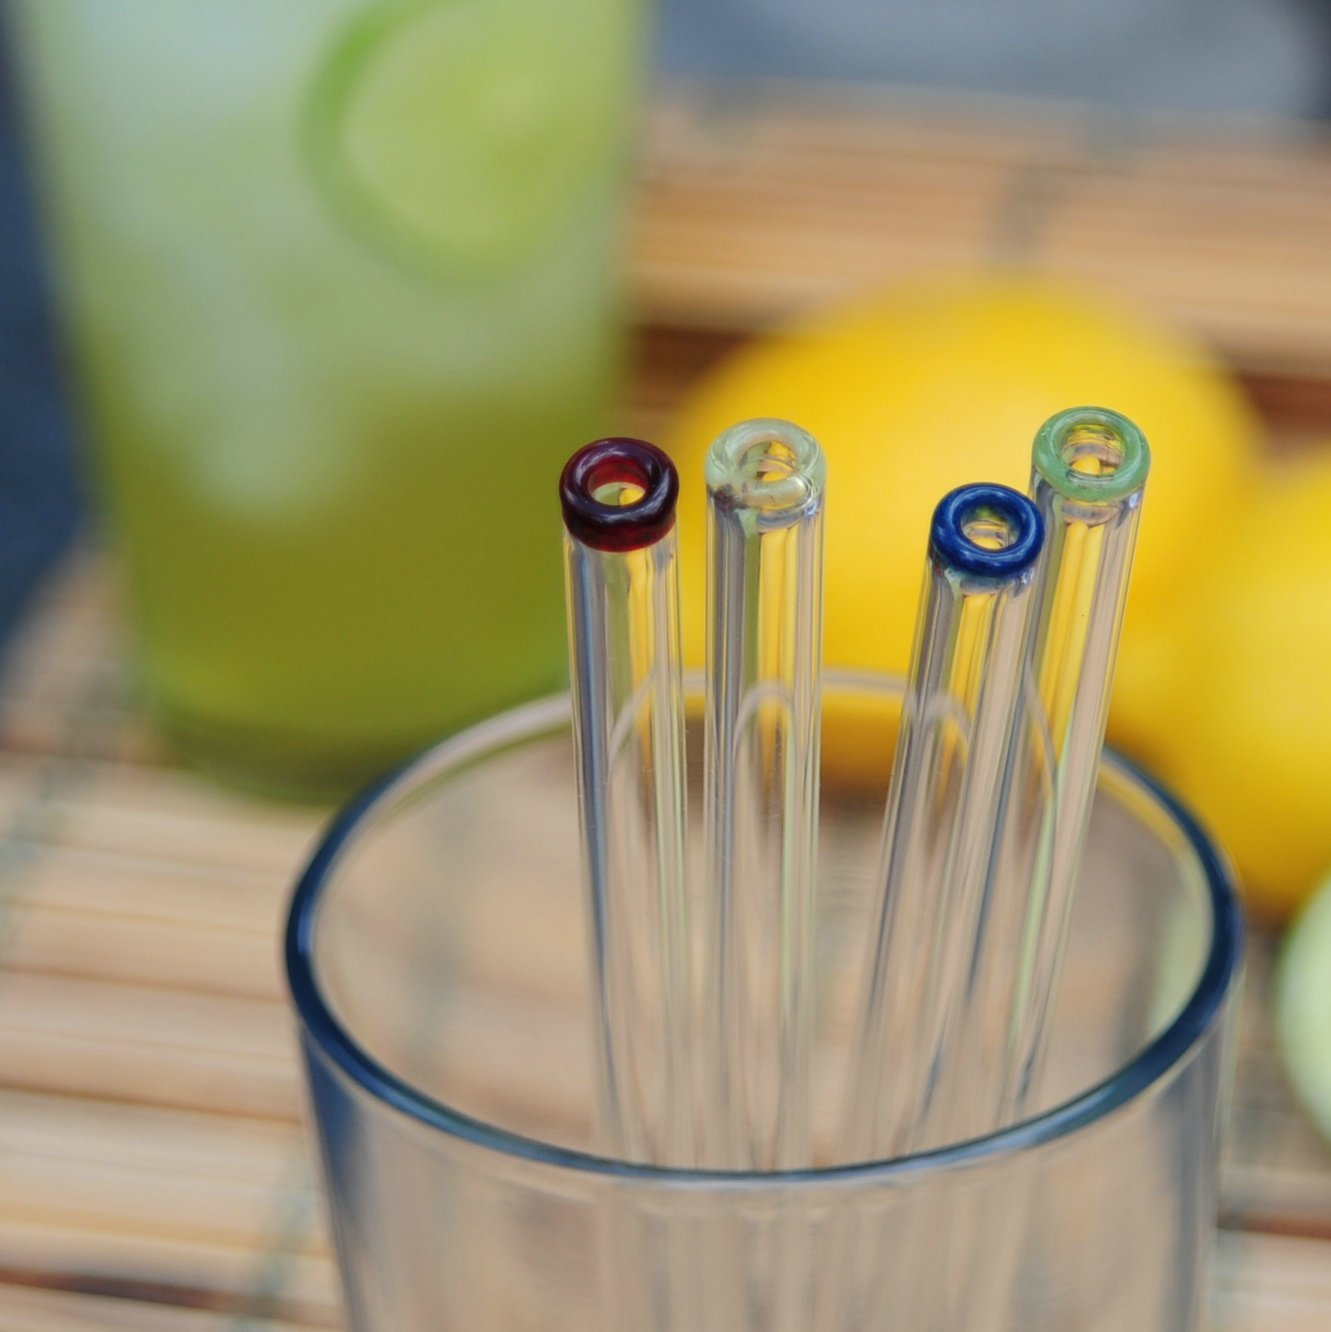 Tianyuan Glass Straight Straws With Cleaning Brush 4 Eco Tools 1332 Glow For It Pack Color Tip 9mm Home Kitchen